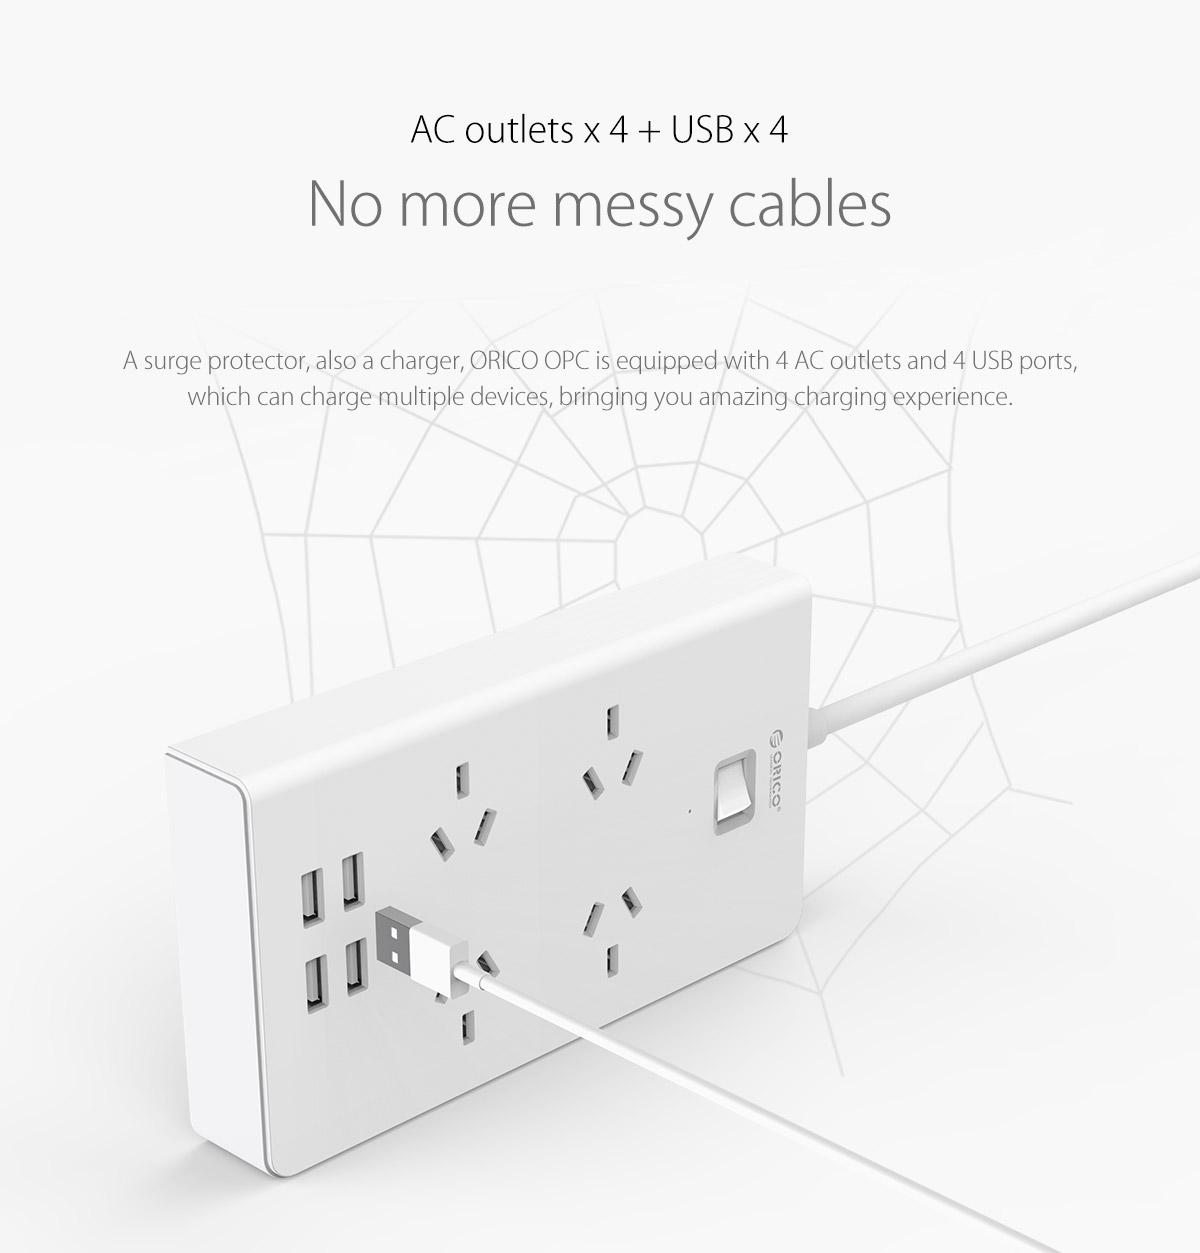 4 AC outlets and 4 USB ports